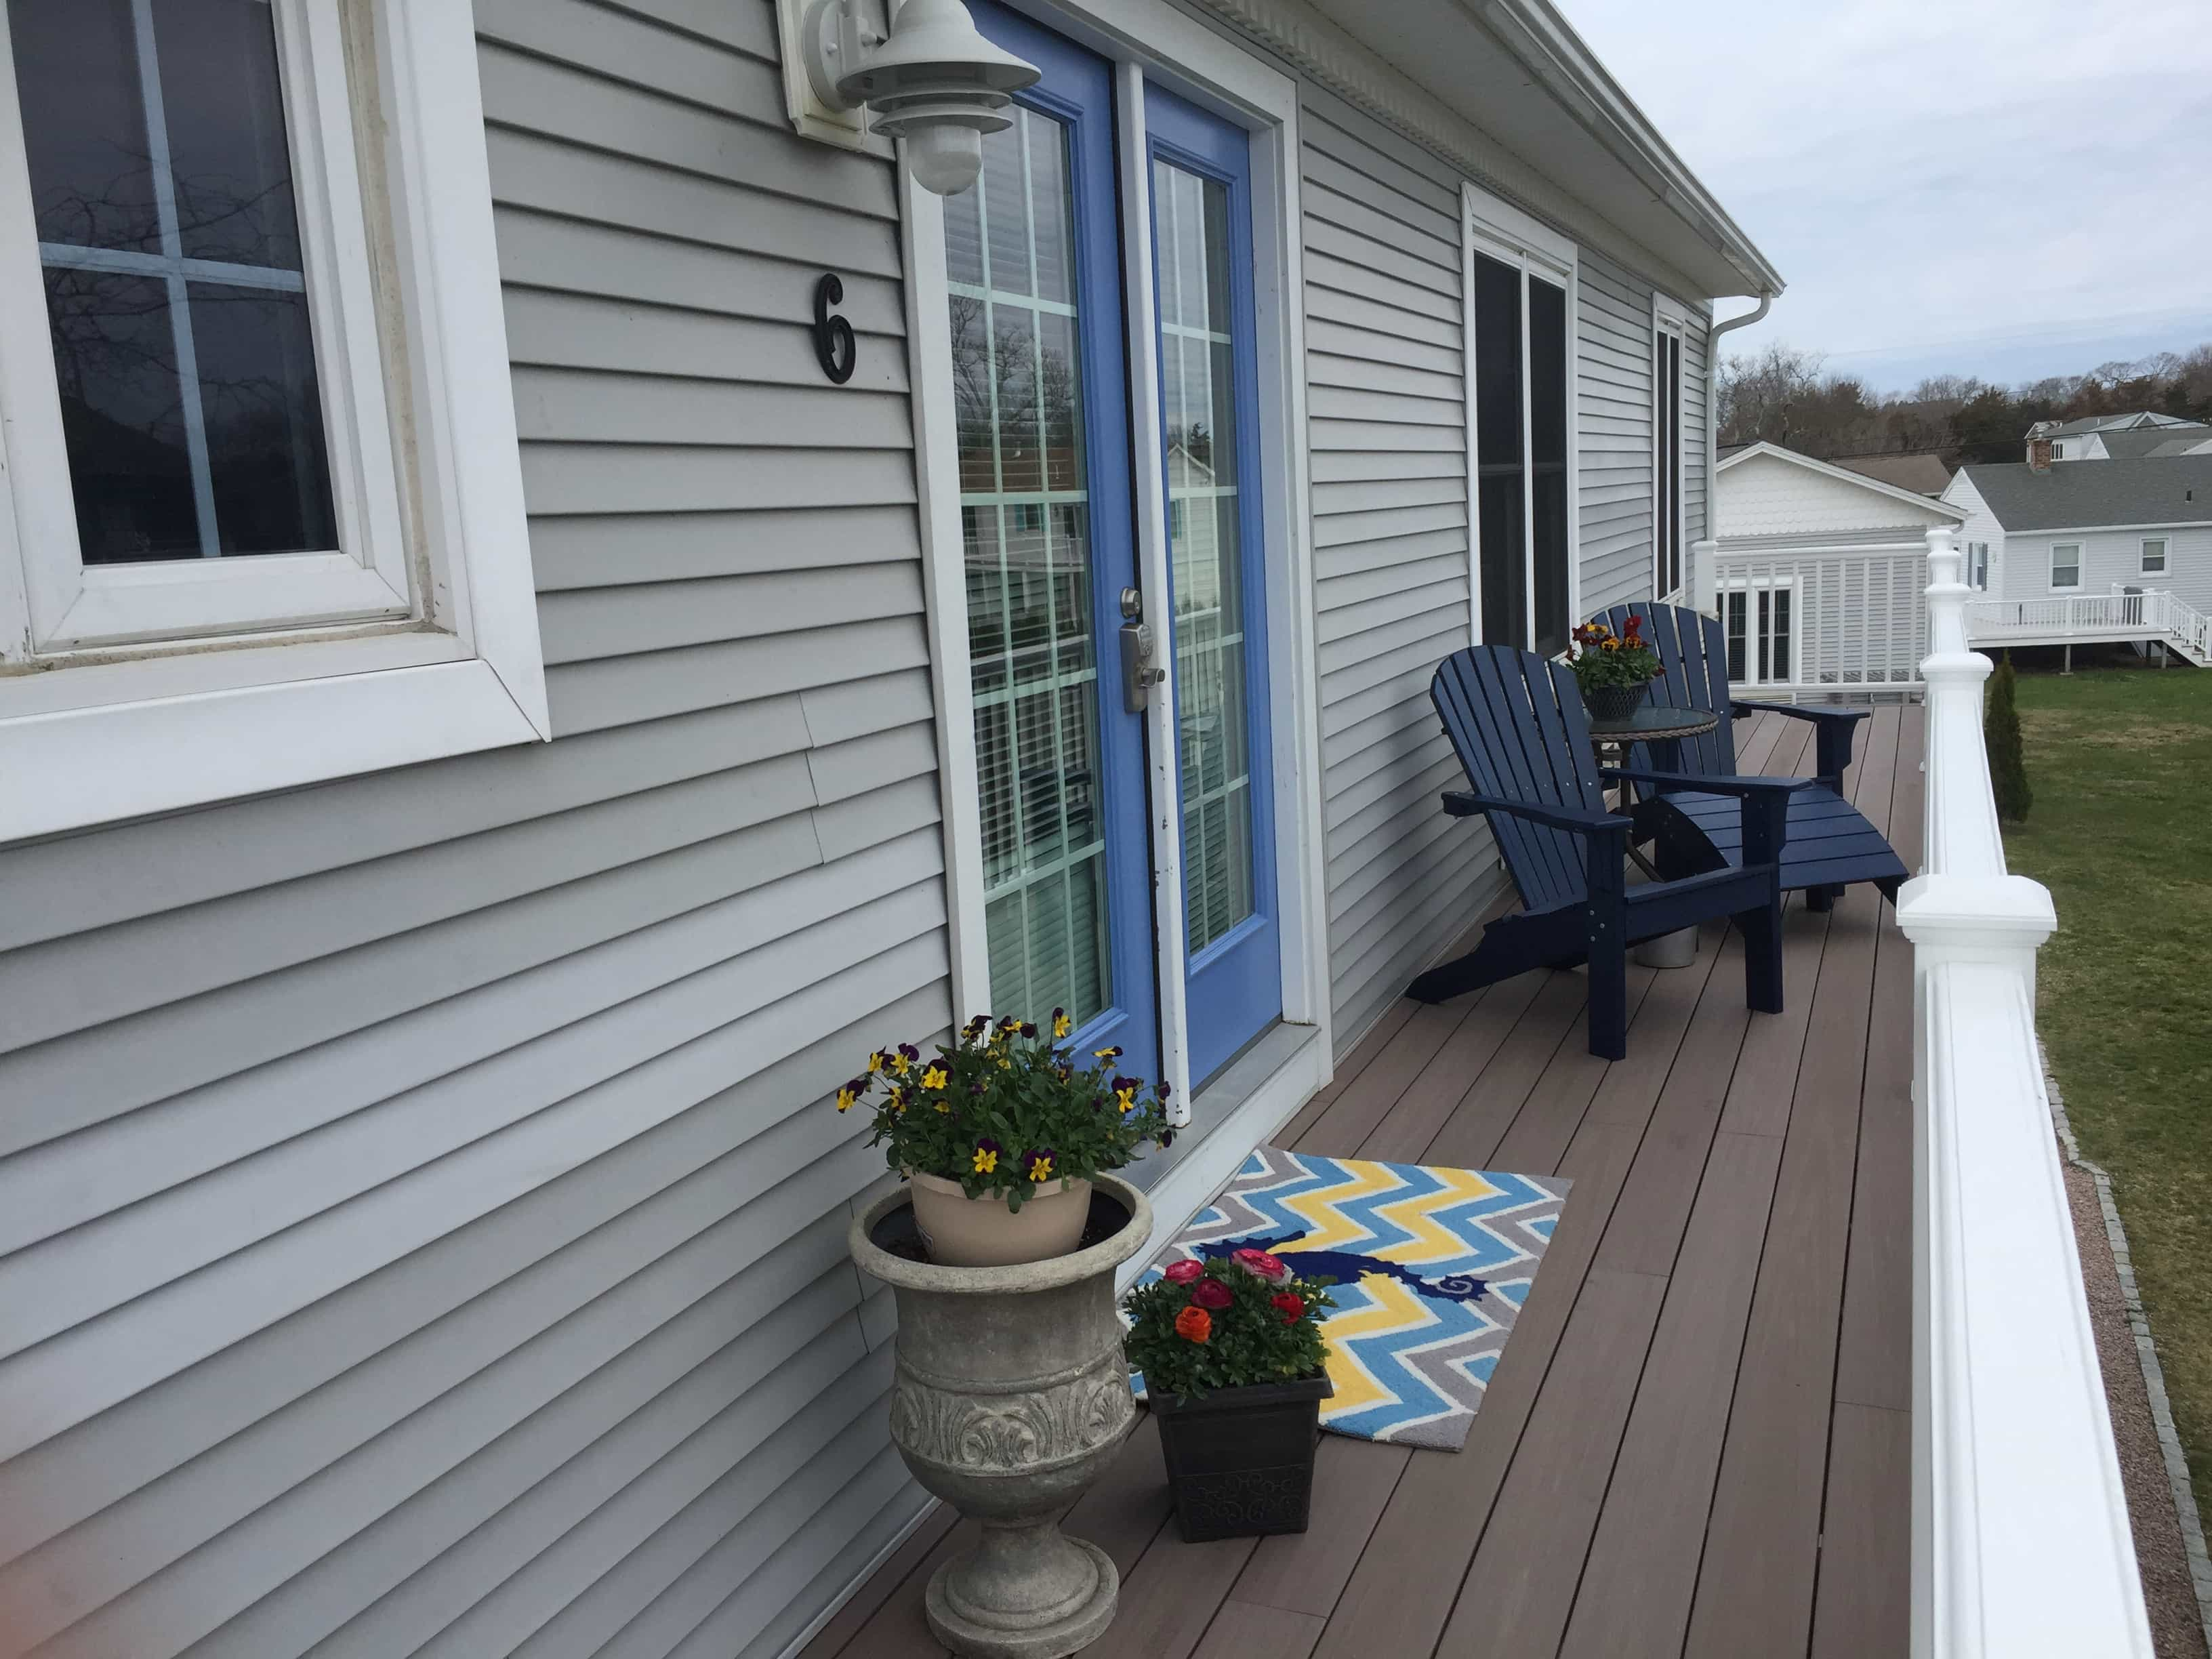 cottage ri misquamicut rental front atlantic cottages previous beauty rentals beach watermarked avenue